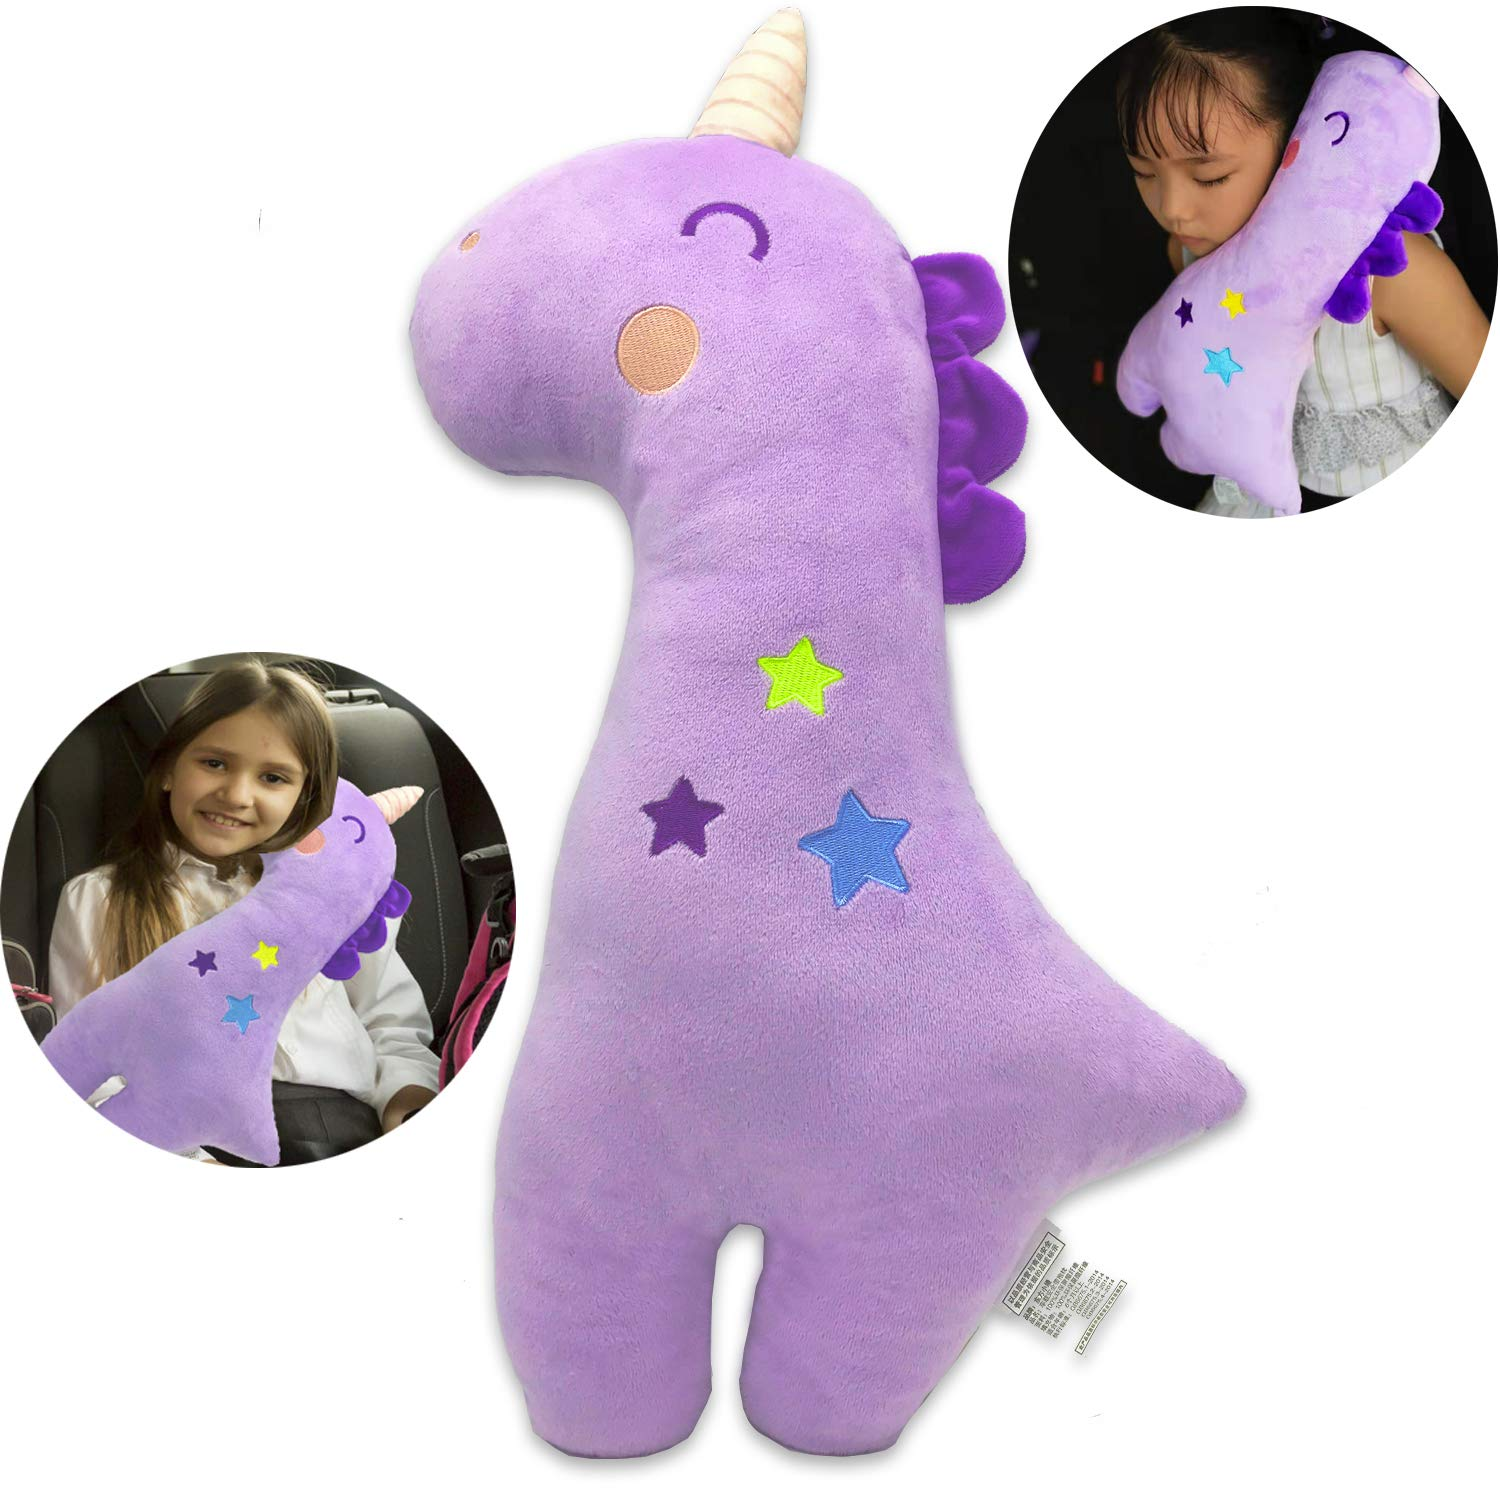 Seatbelt Pillow for Kids, Car Pillow Seat Belt Cushion Kids Seatbelt Pillow, Car Seat Belt Covers Child Seat Head Rest Support Shoulder Pad, Seat Strap Car Pillows Adjuster for Children Baby (Unicorn) by MANNEW